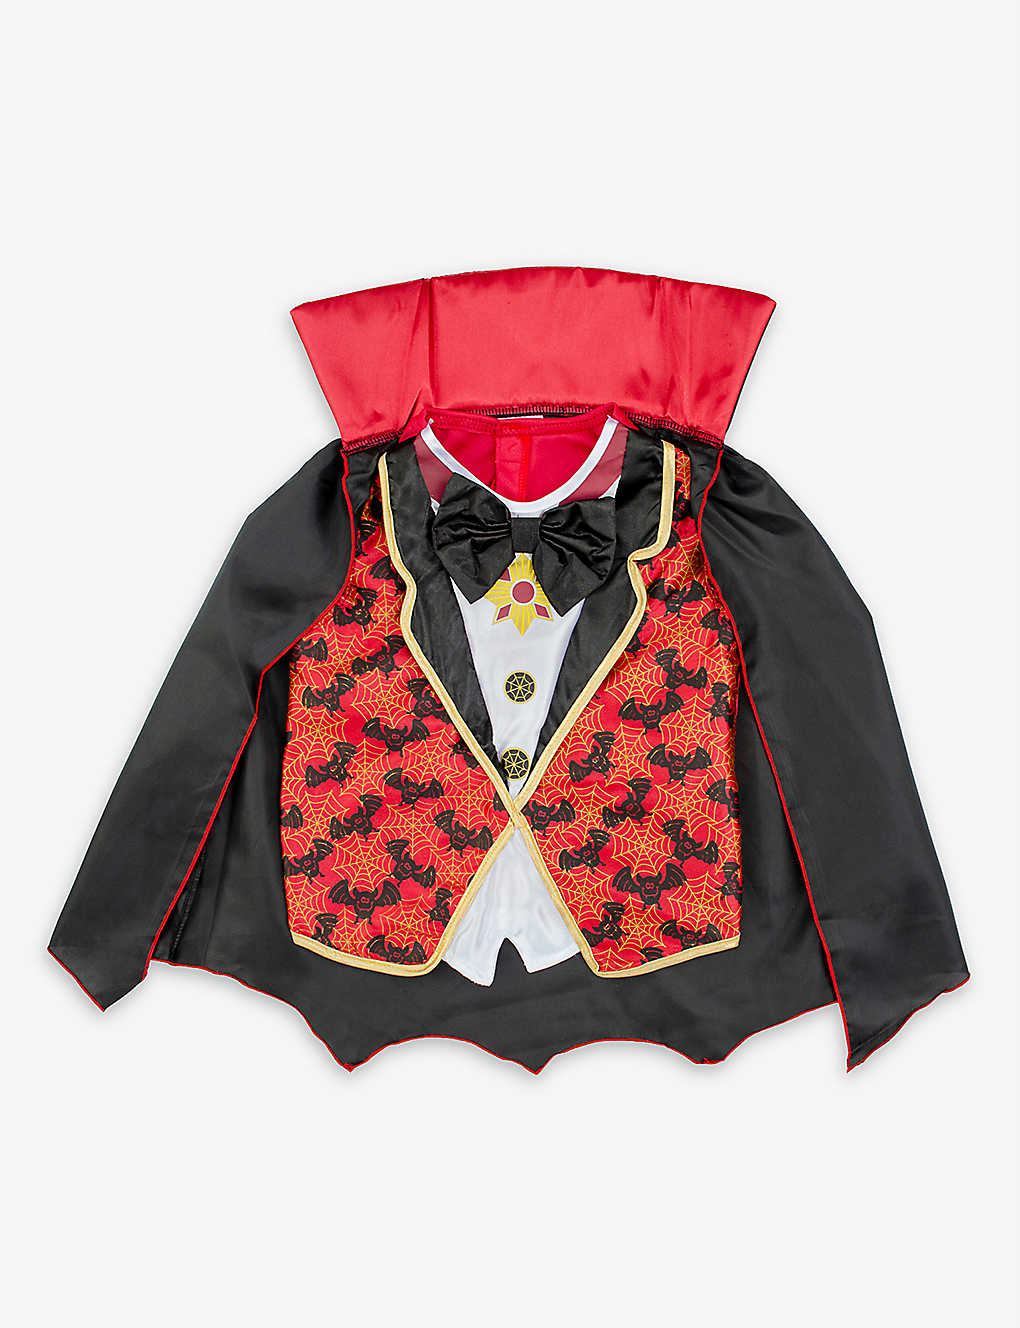 DRESS UP: Dracula dressing-up costume 3-4 years